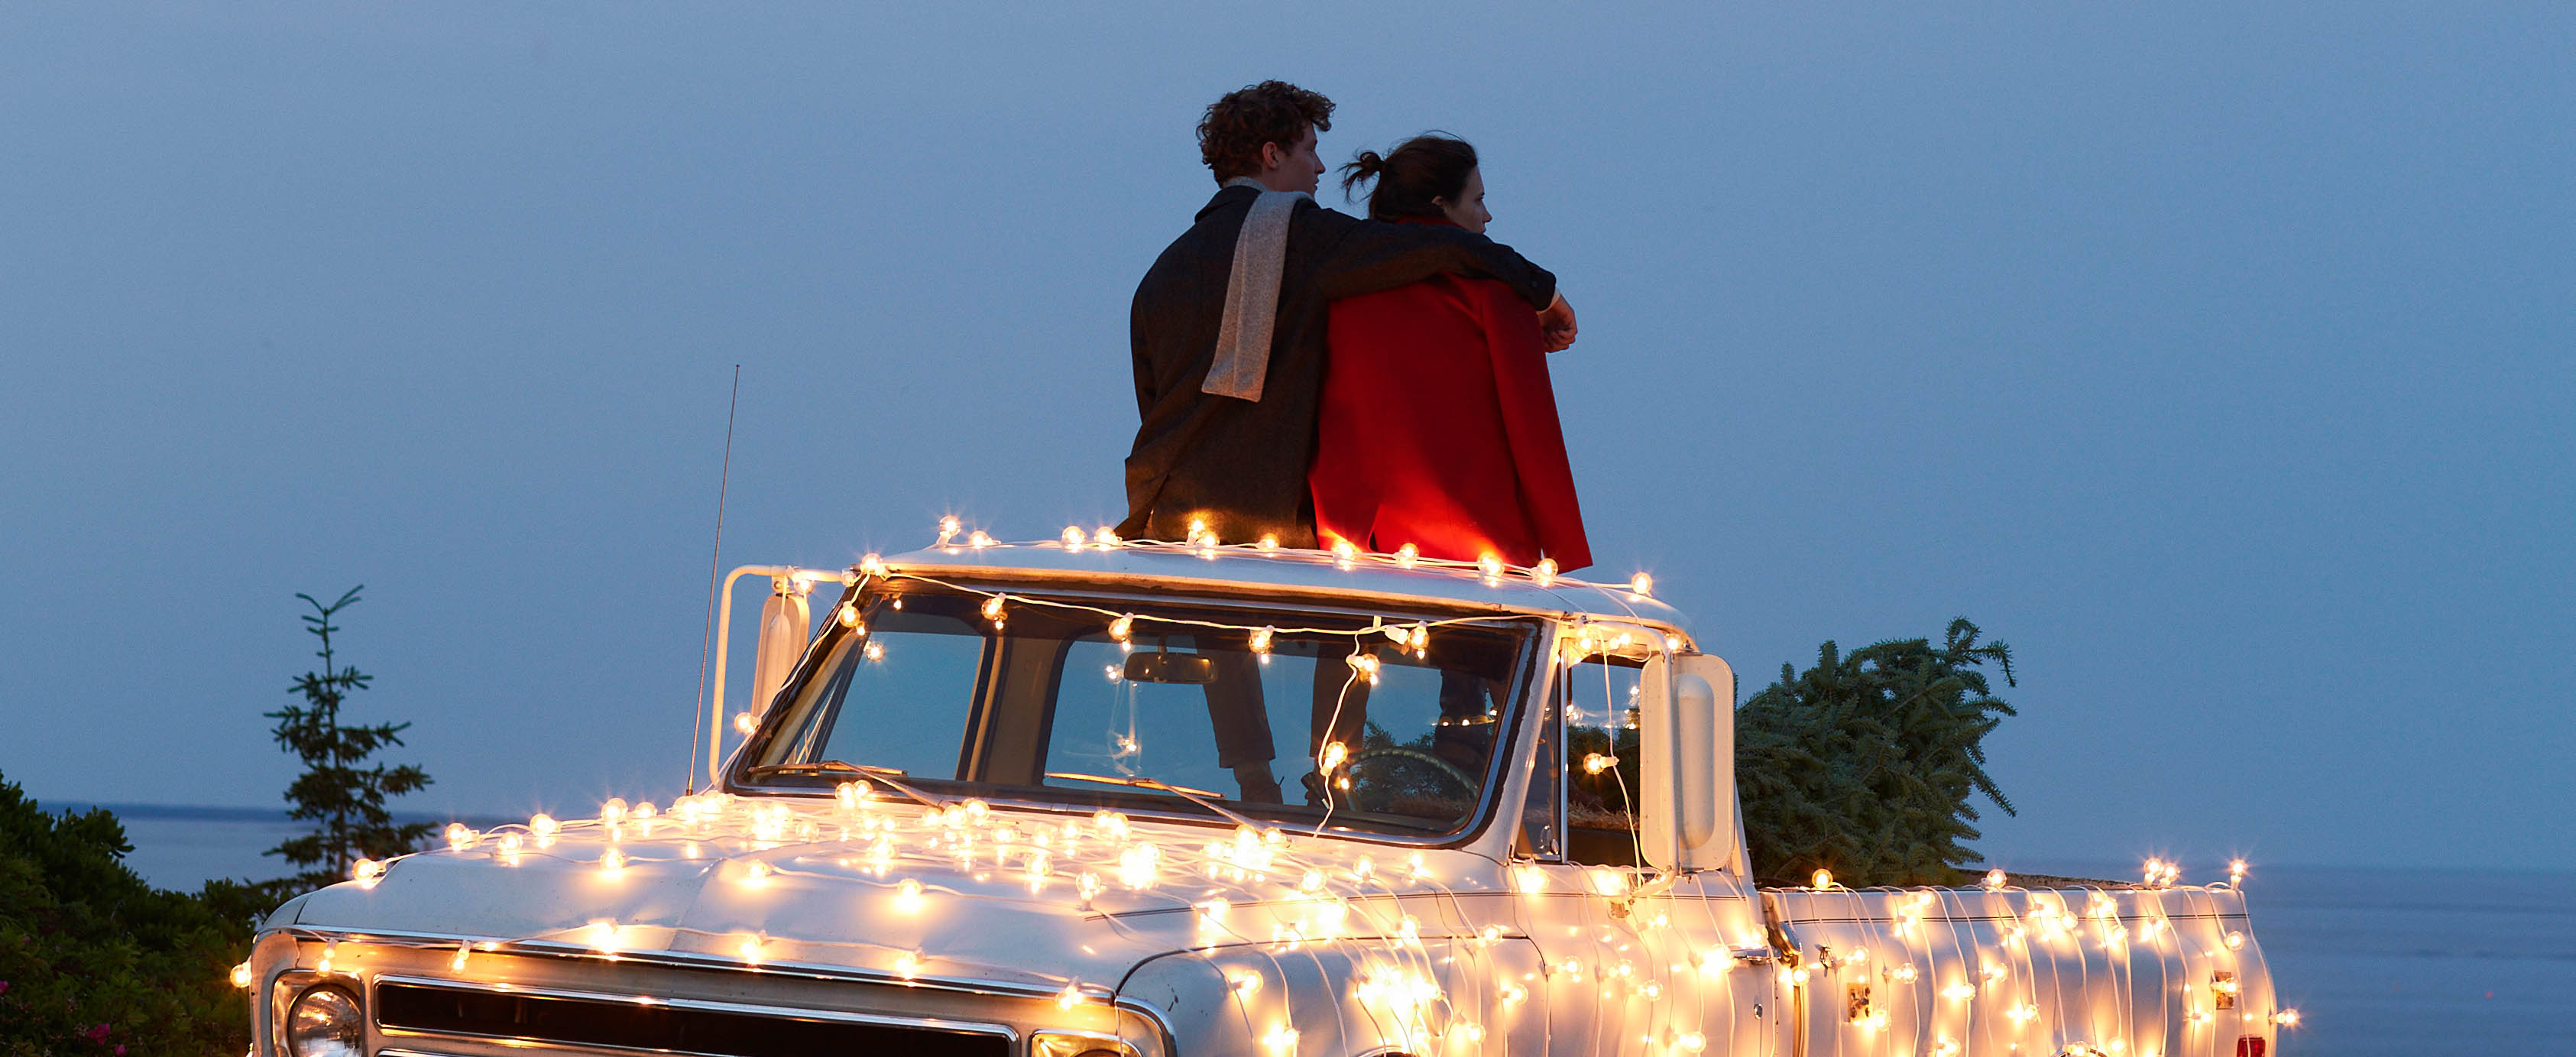 A teen couple sitting on the top of a pickup truck festooned with lights